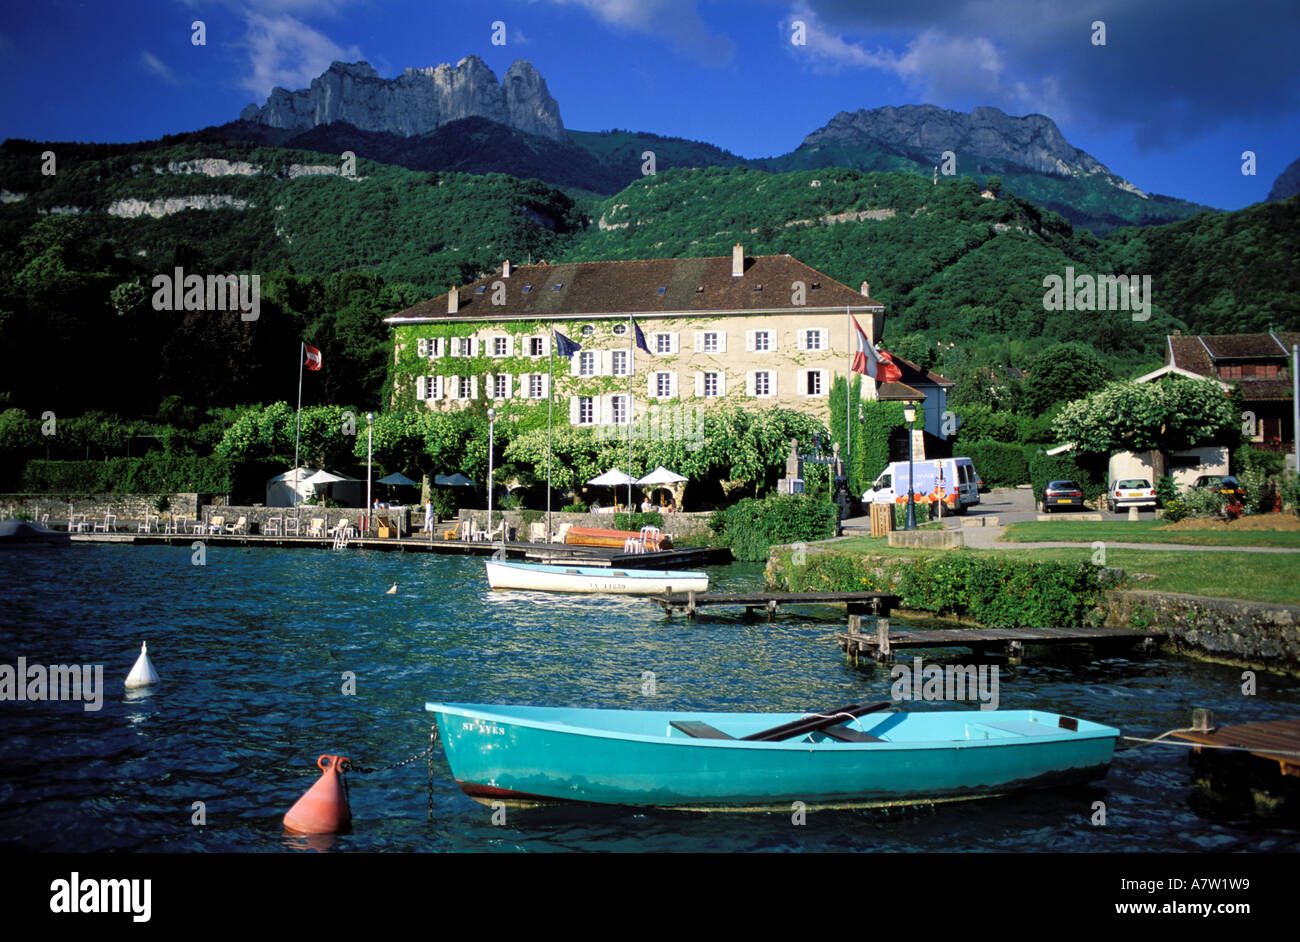 France haute savoie annecy lake talloires hotel of the abbey stock photo 6808152 alamy for Lake annecy hotels swimming pool